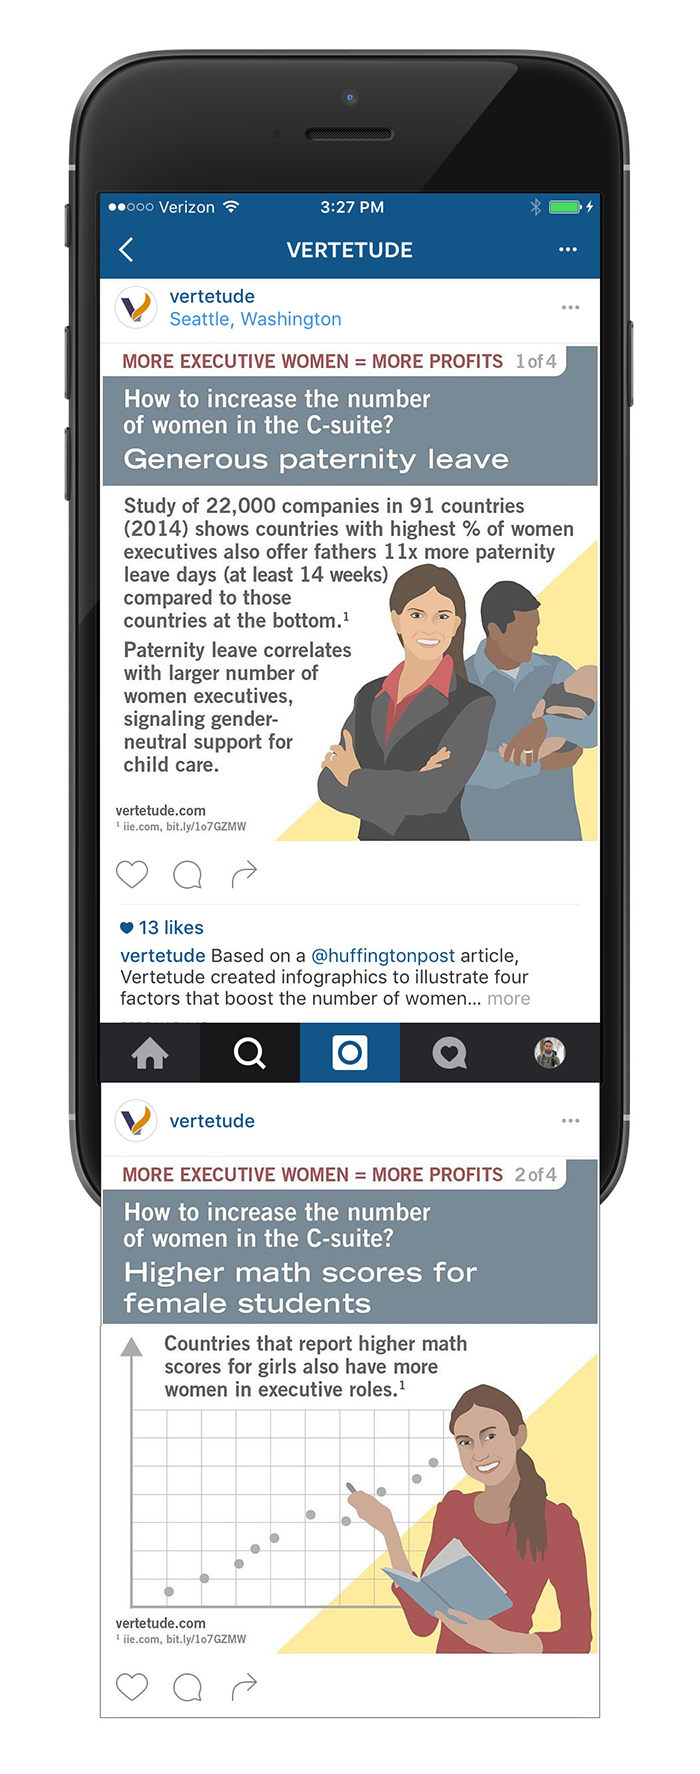 More executive women more profit infographic for mobile and social media